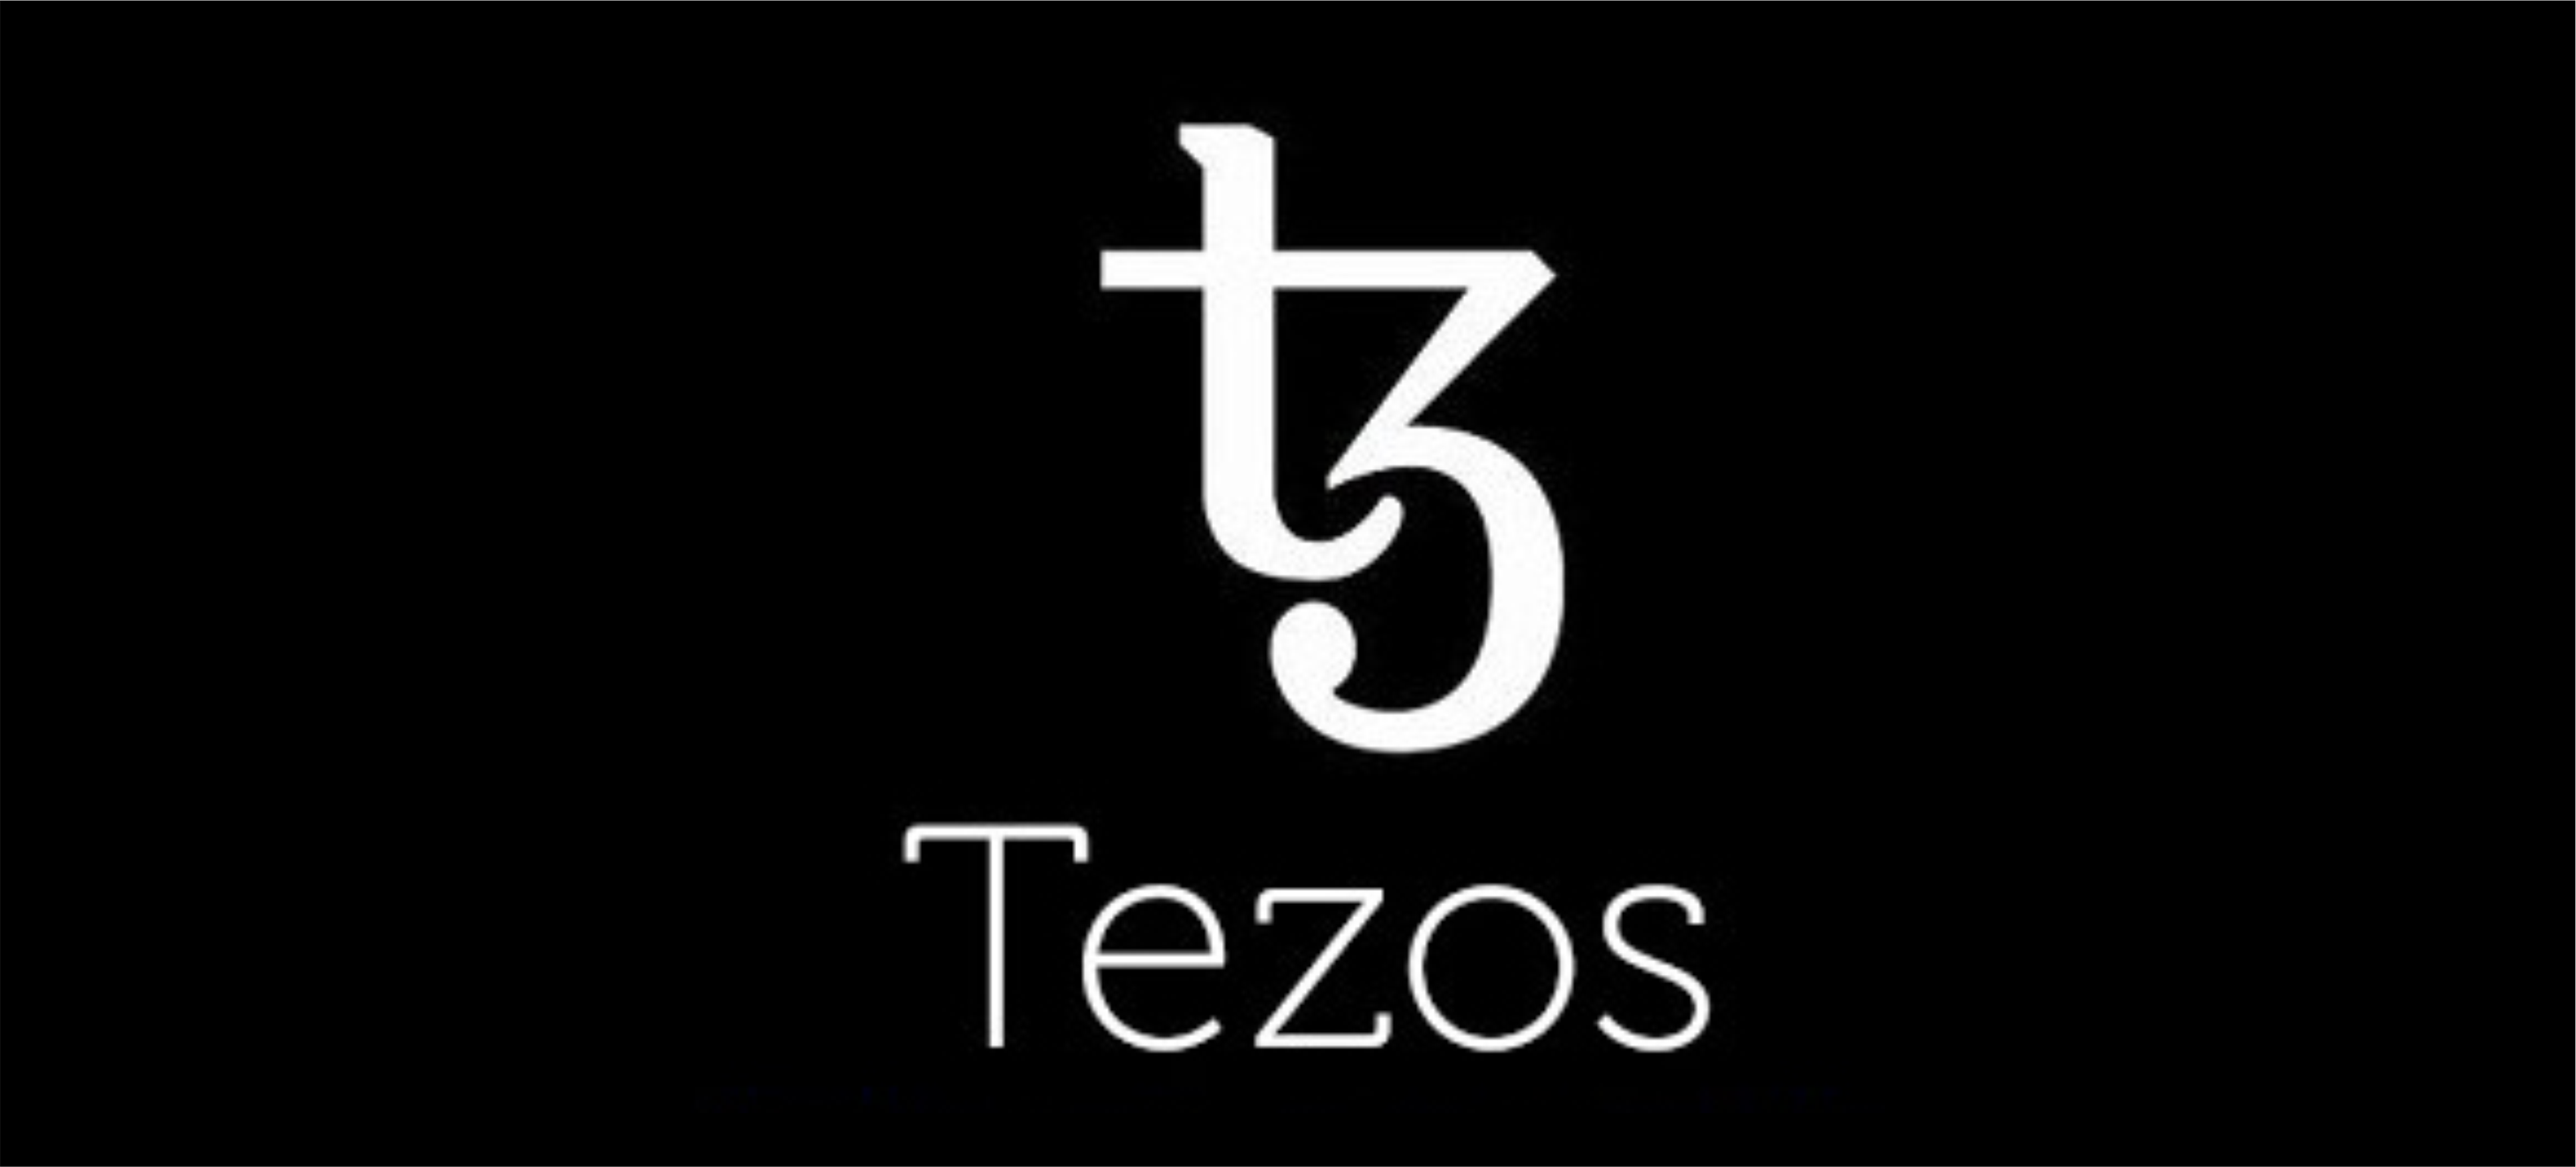 Bitcoin Now a Part of The Tezos Blockchain; TZBTC Token Launched